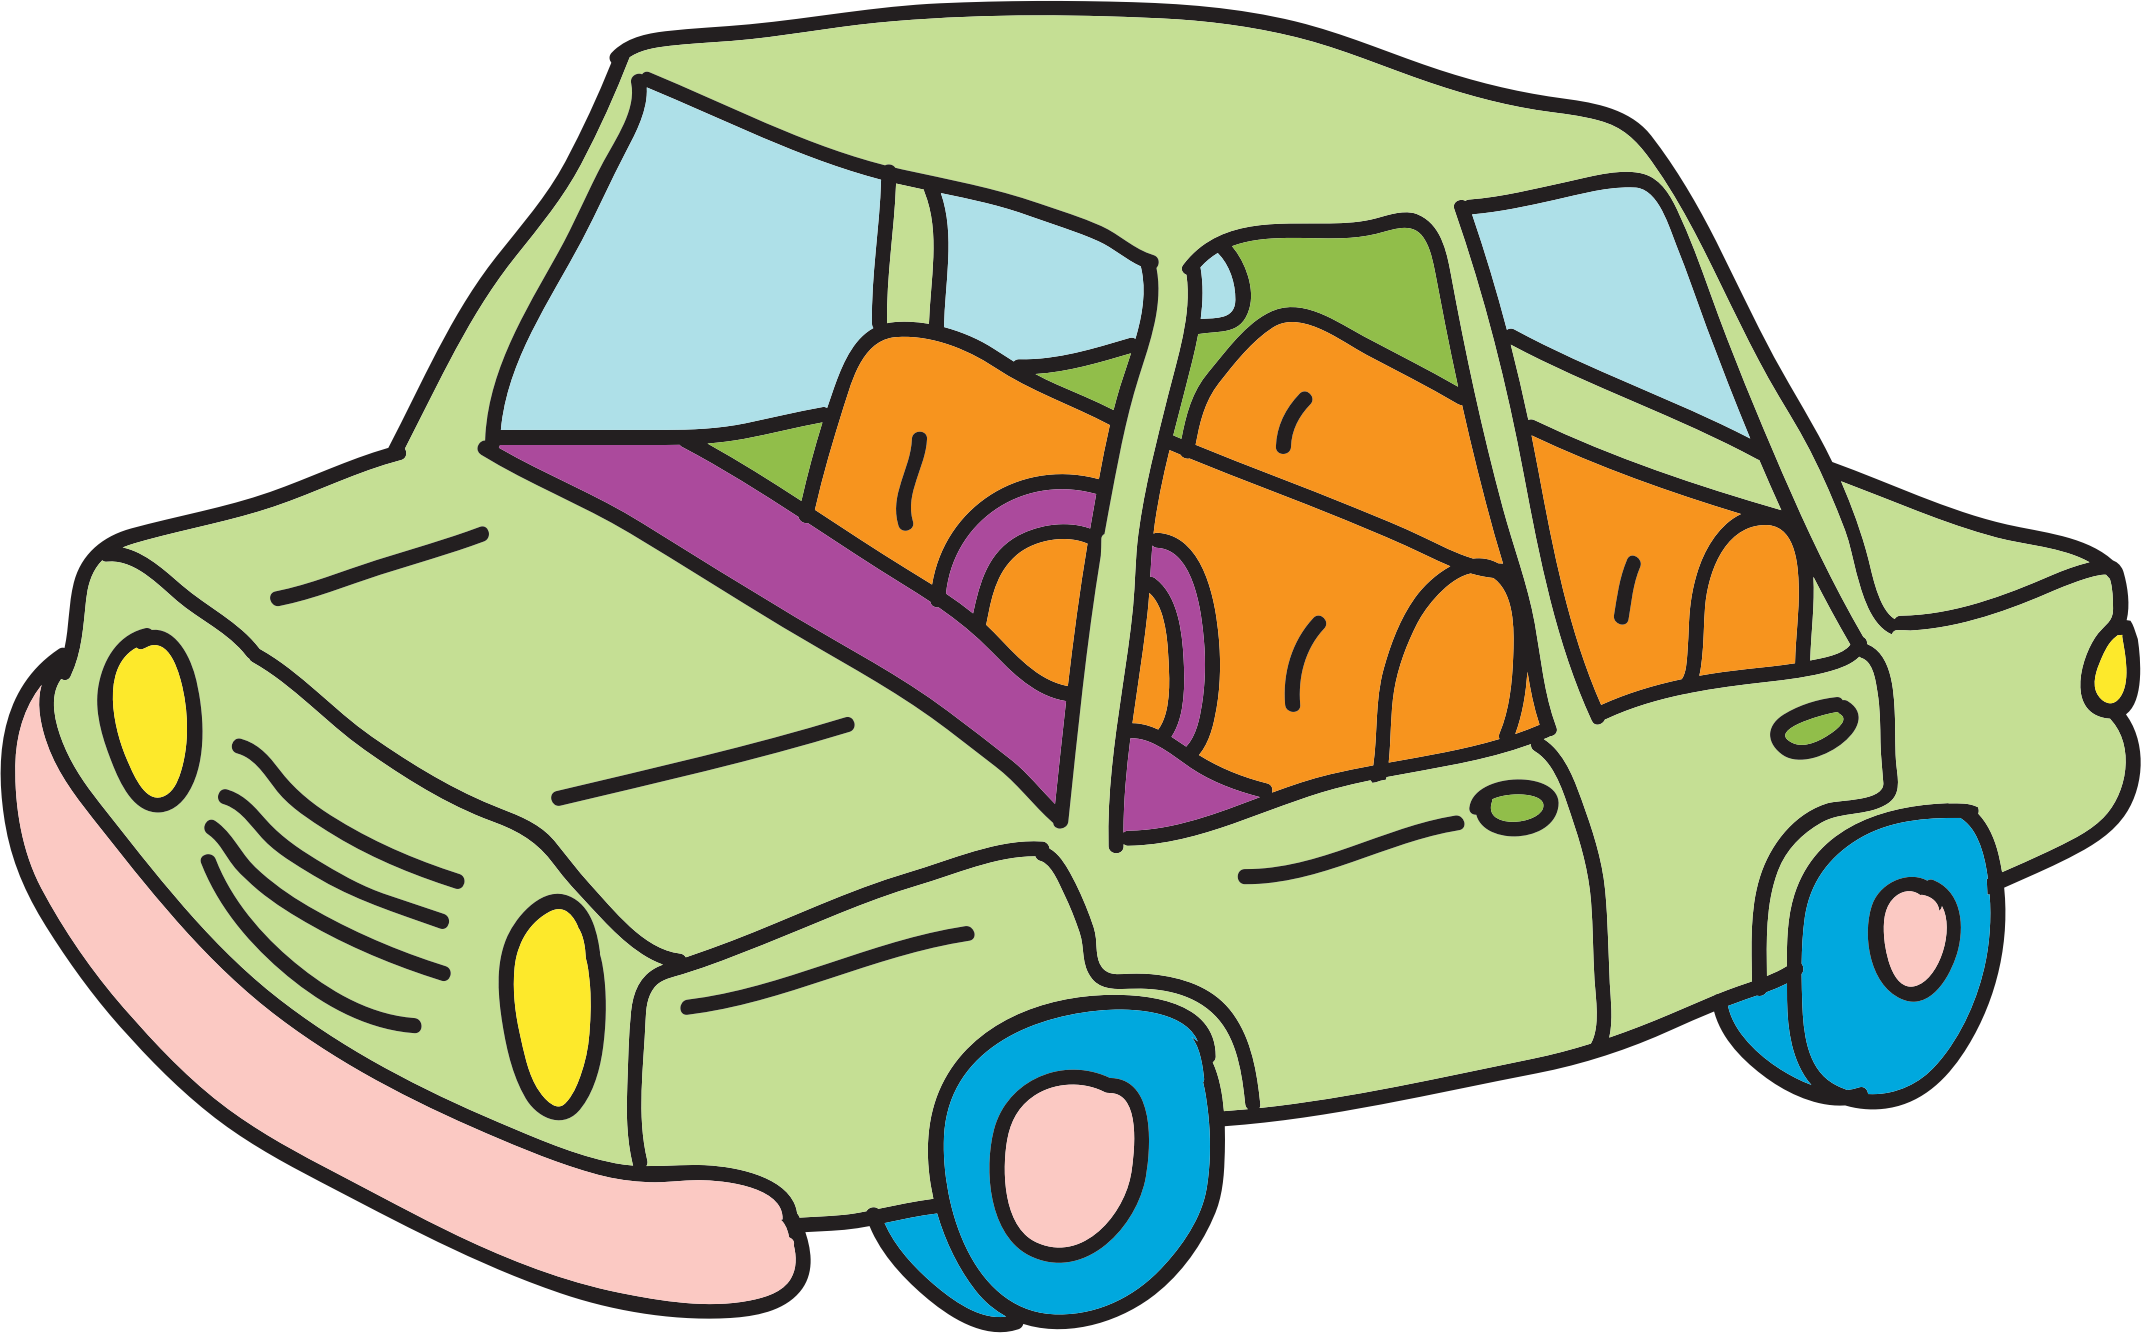 Car picture clipart clipart download Car Images Drawing at GetDrawings.com | Free for personal use Car ... clipart download